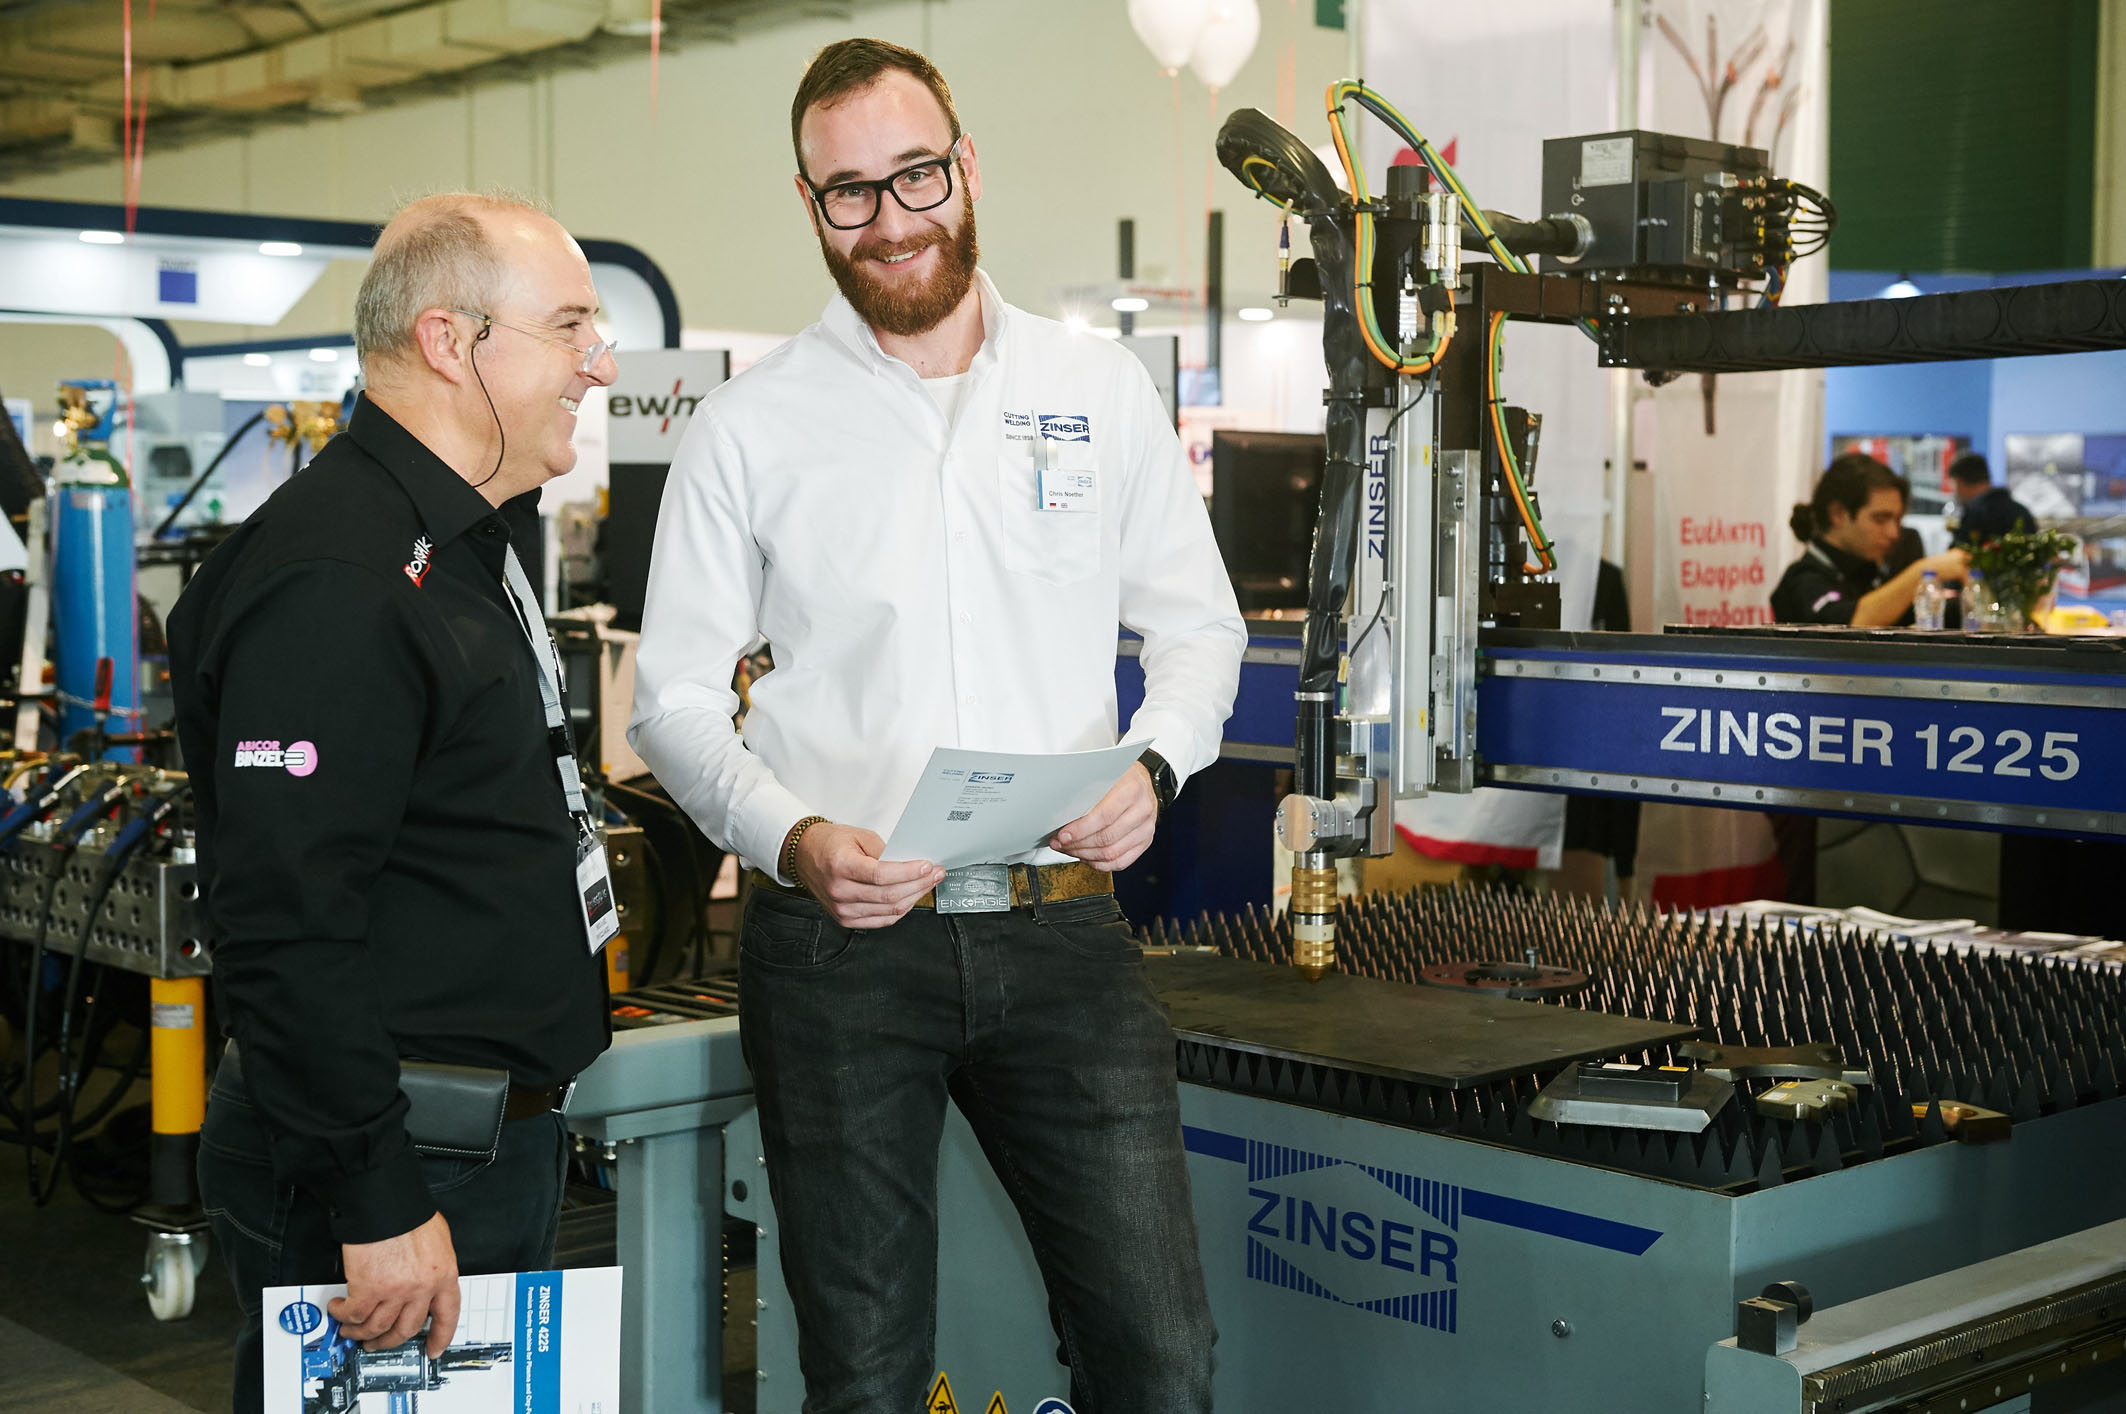 [:de] ZINSER auf der Metal Machinery in Griechenland 2018 [:en] ZINSER at the Metal Machinery in Greece 2018